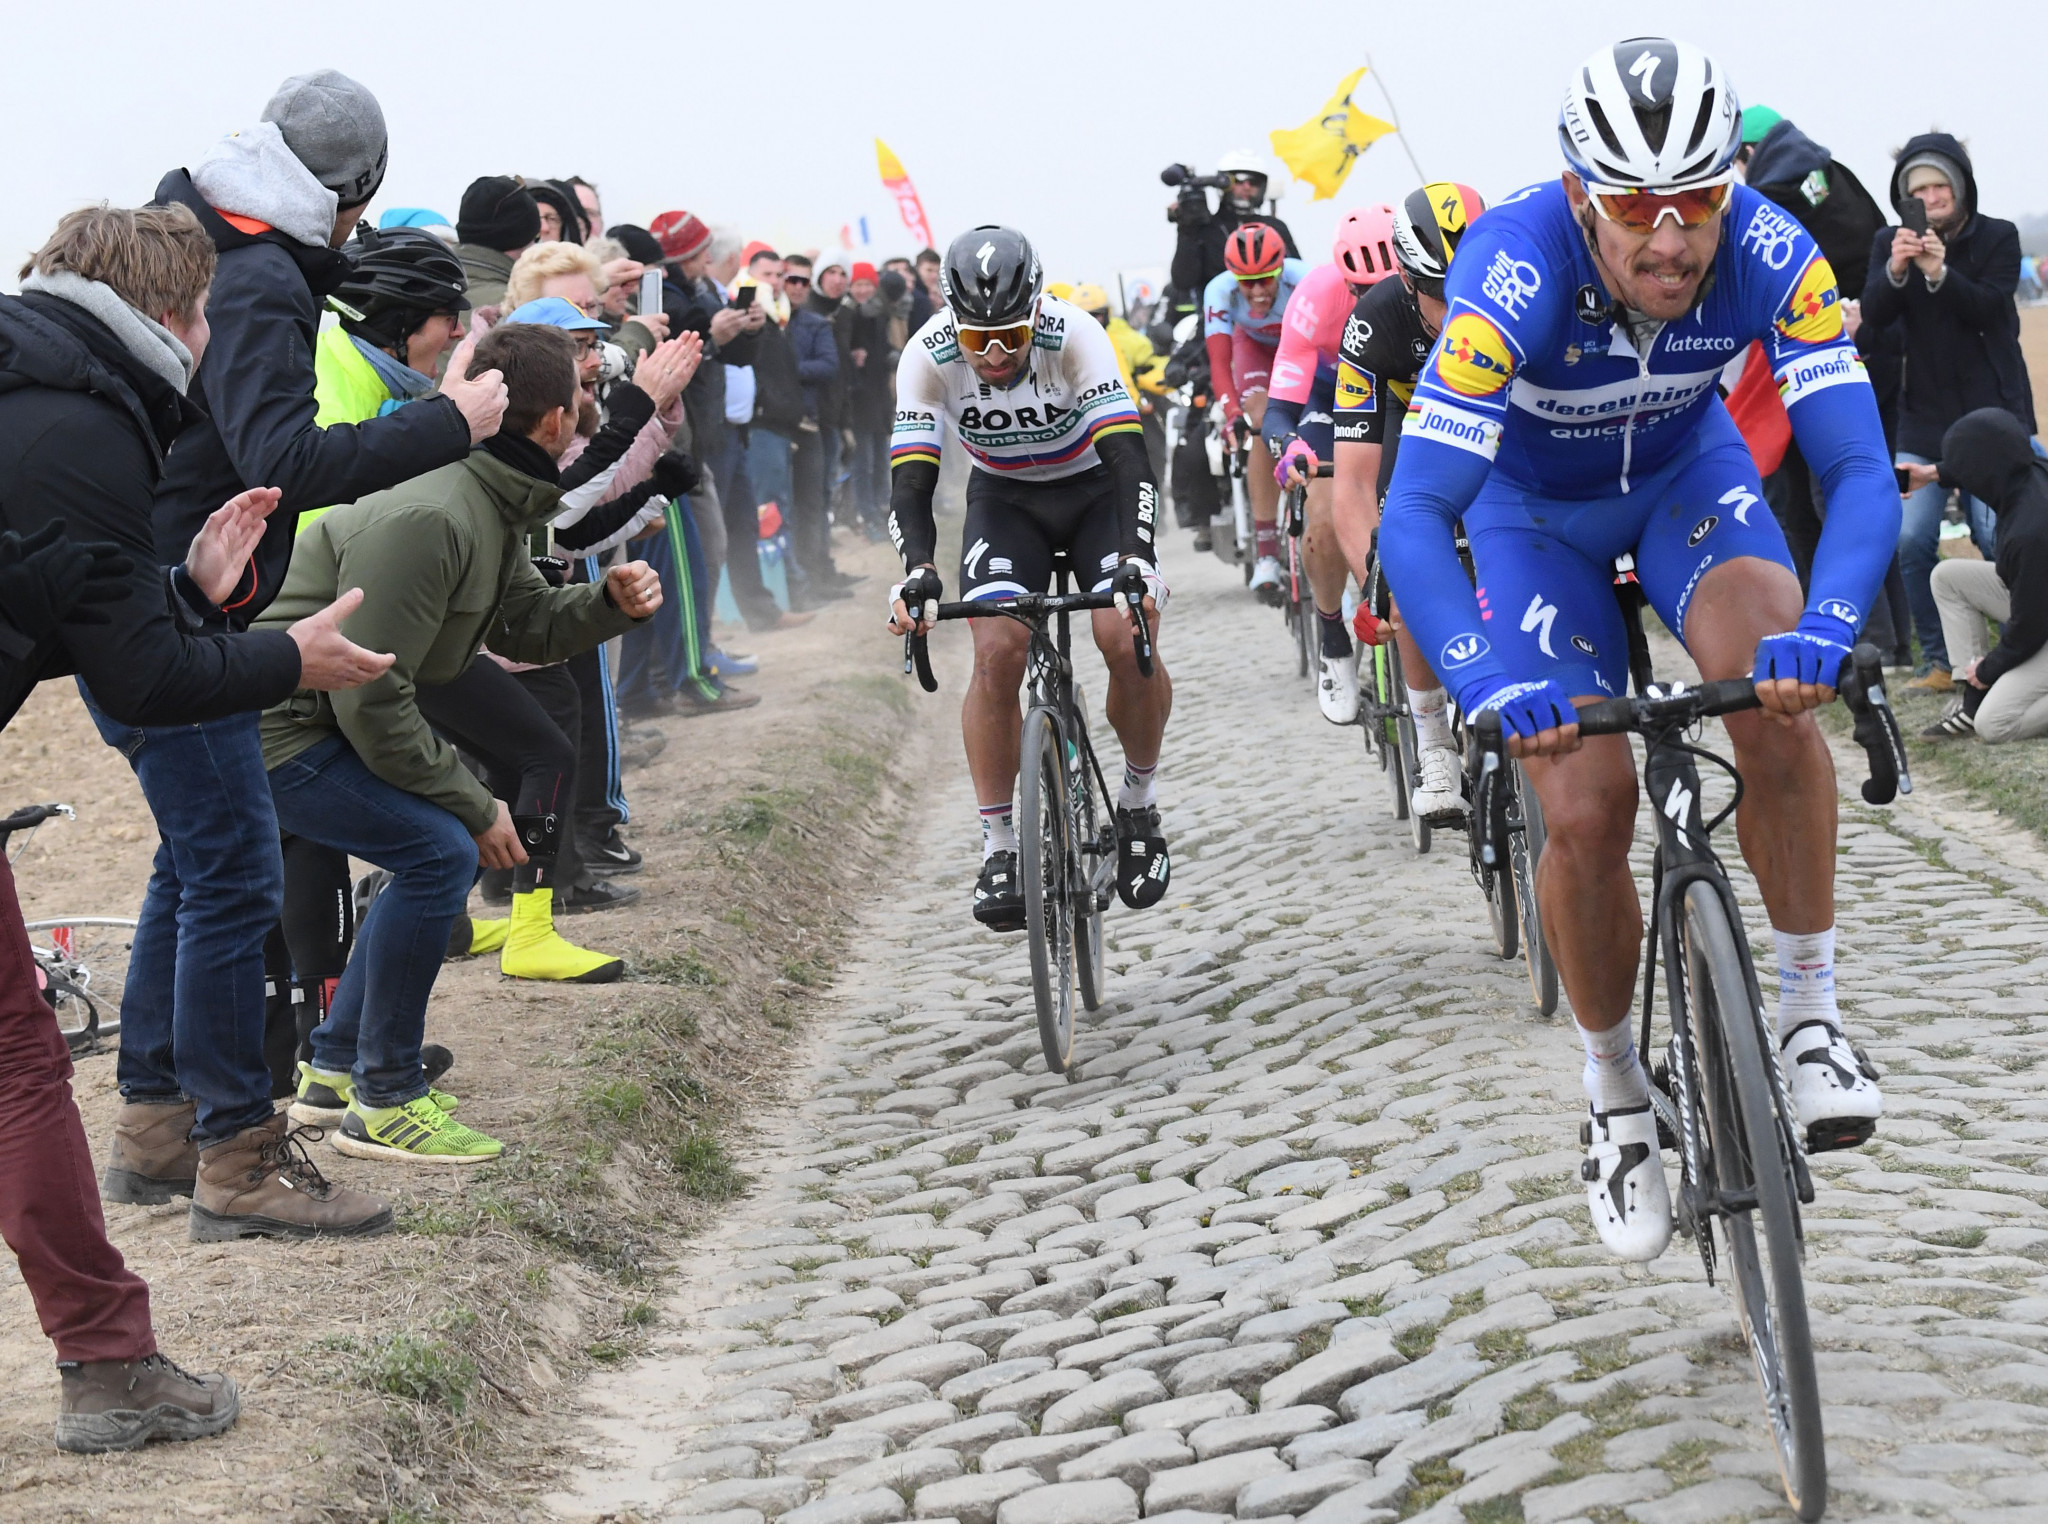 Paris-Roubaix is reportedly in doubt amid COVID-19 restrictions in France ©Getty Images